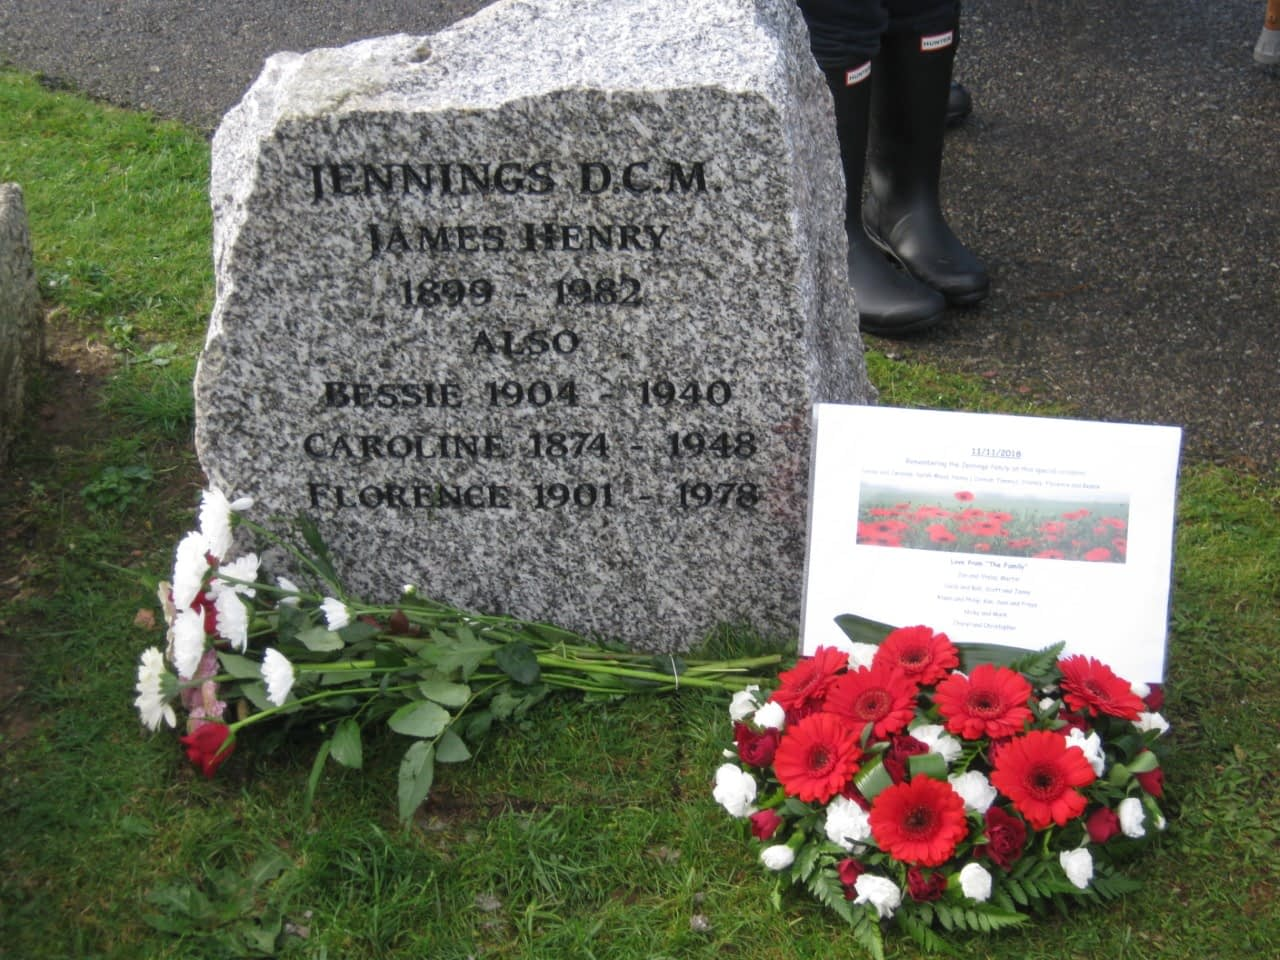 Granite headstone on the unmarked grave of Henry Jennings DCM